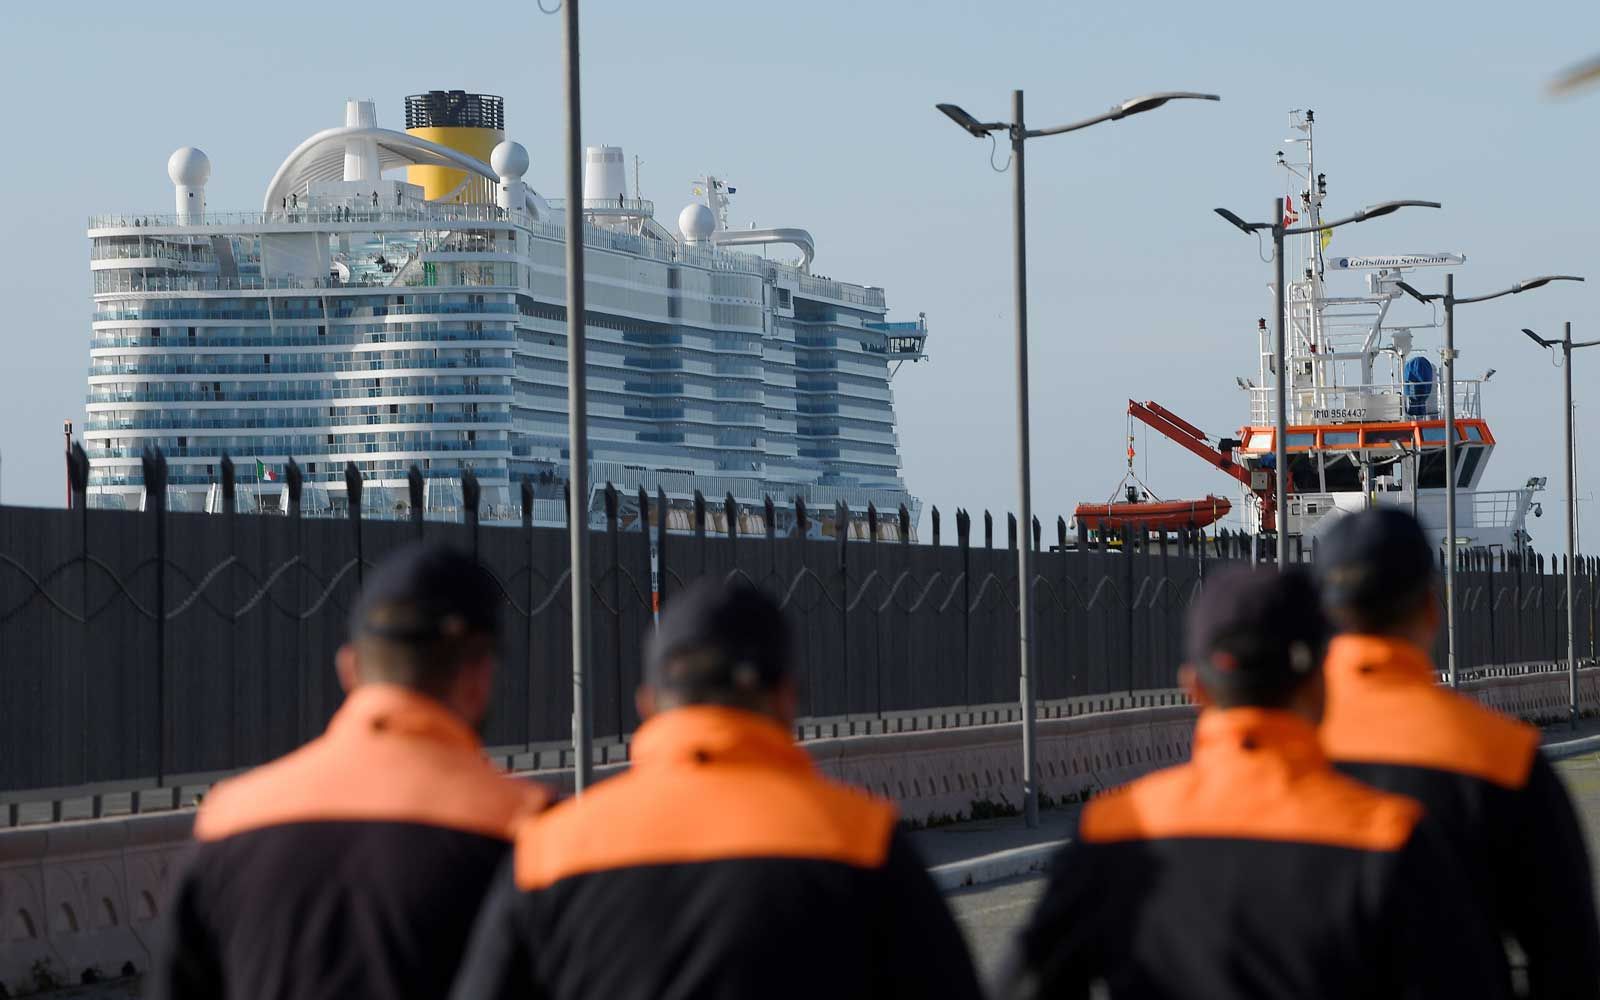 Coastguard members walk past the Costa Smeralda cruise ship docked in the Civitavecchia port 70km north of Rome on January 30, 2020